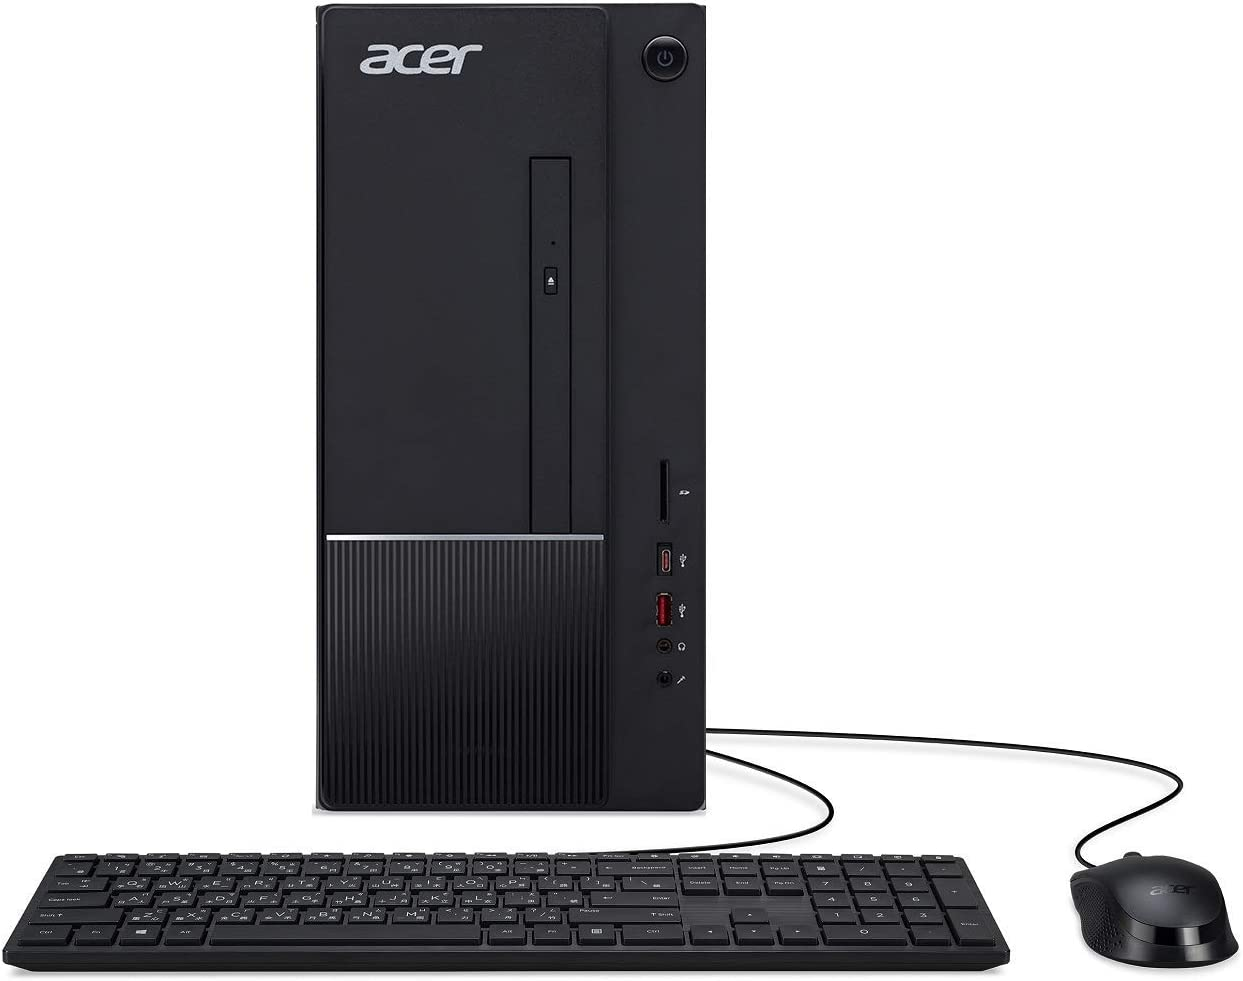 Acer Aspire TC-865-UR14 Desktop, 9th Gen Intel Core i5-9400, 8GB DDR4, 1TB 7200RPM HDD, 8X DVD, 802.11ac WiFi, USB 3.1 Type C, Windows 10 Home (Renewed)